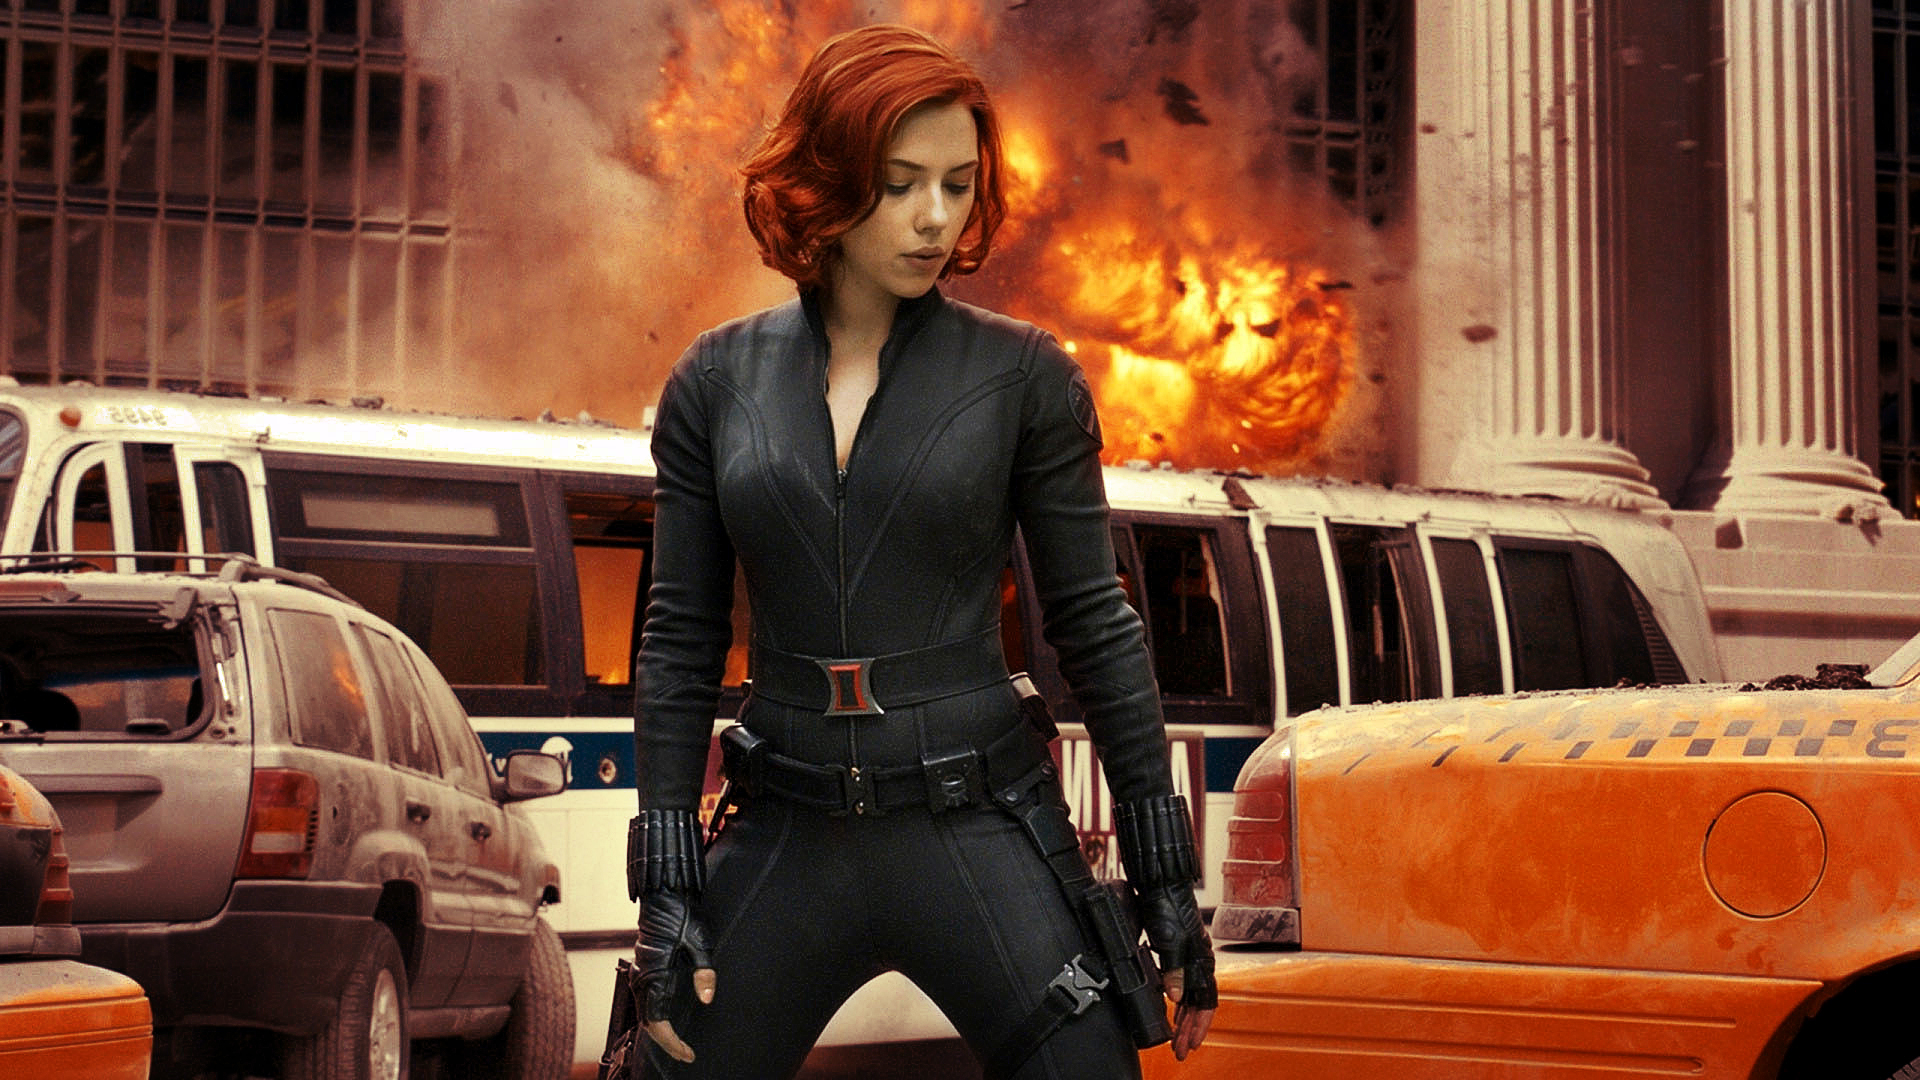 Marvel reveals first details, footage of Black Widow solo movie at Comic-Con